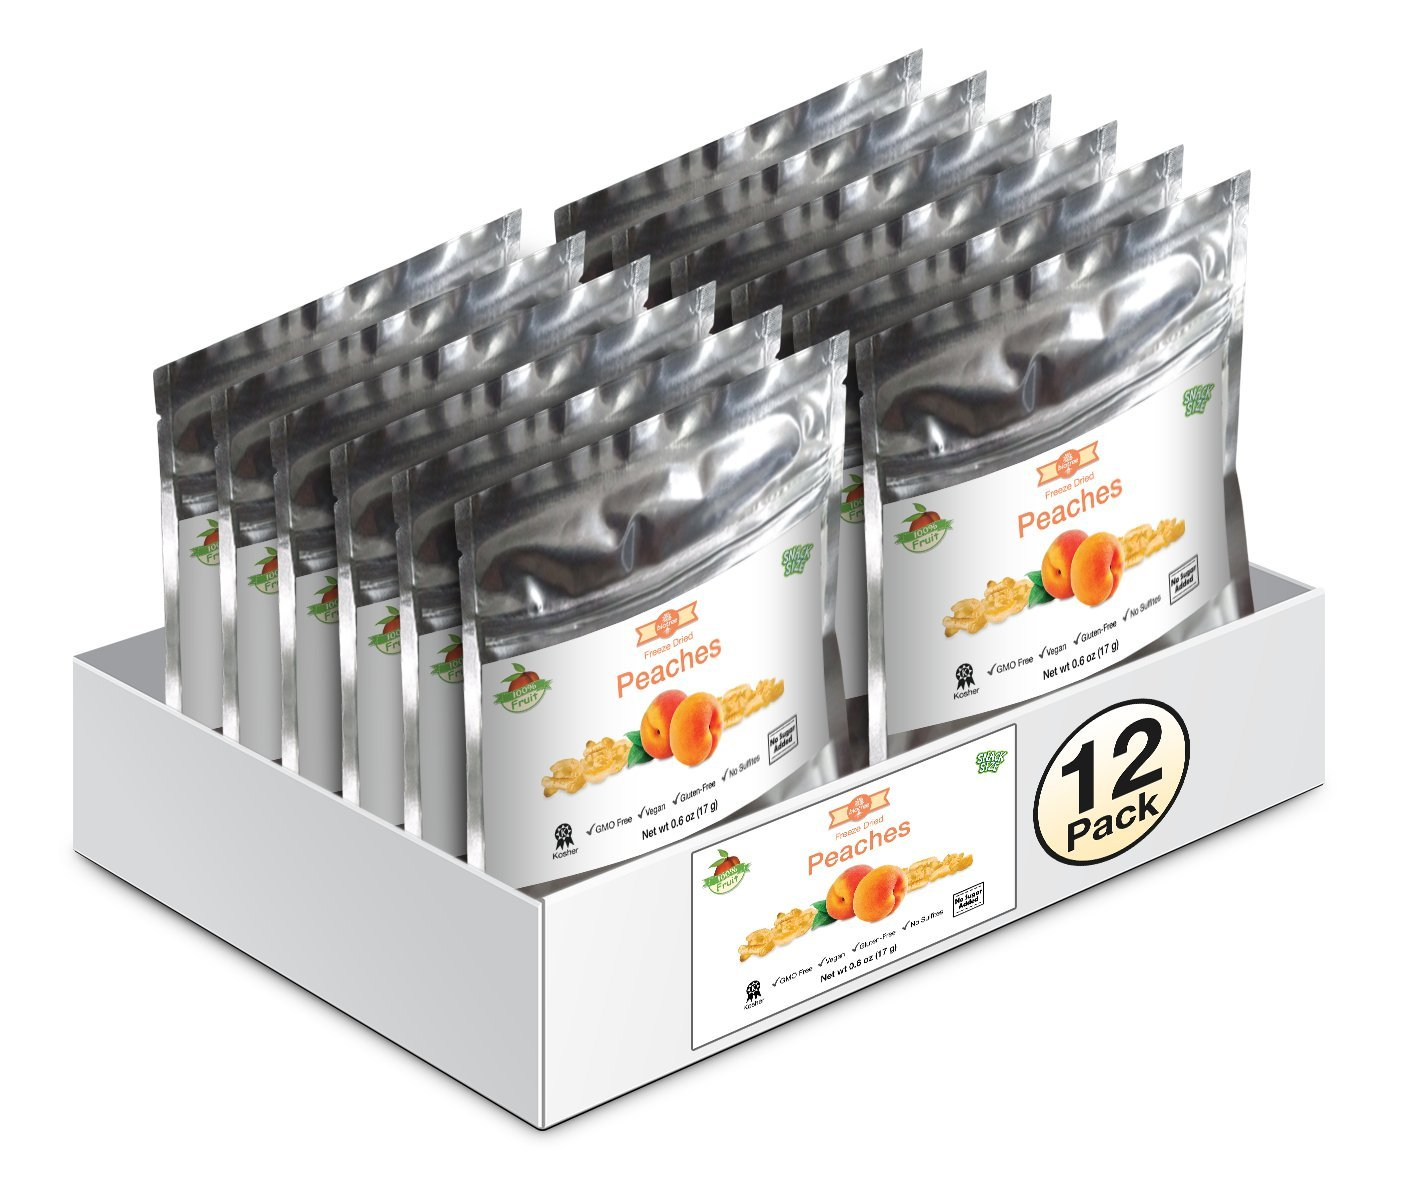 12 Pack of Snack Size Delicious Peaches - All Natural 100% Freeze Dried Peaches: No Added Sugar or Preservatives, Paleo, Gluten-Free. Healthy Snack for Children & Adults (0.4 Oz) by BioTree Naturals